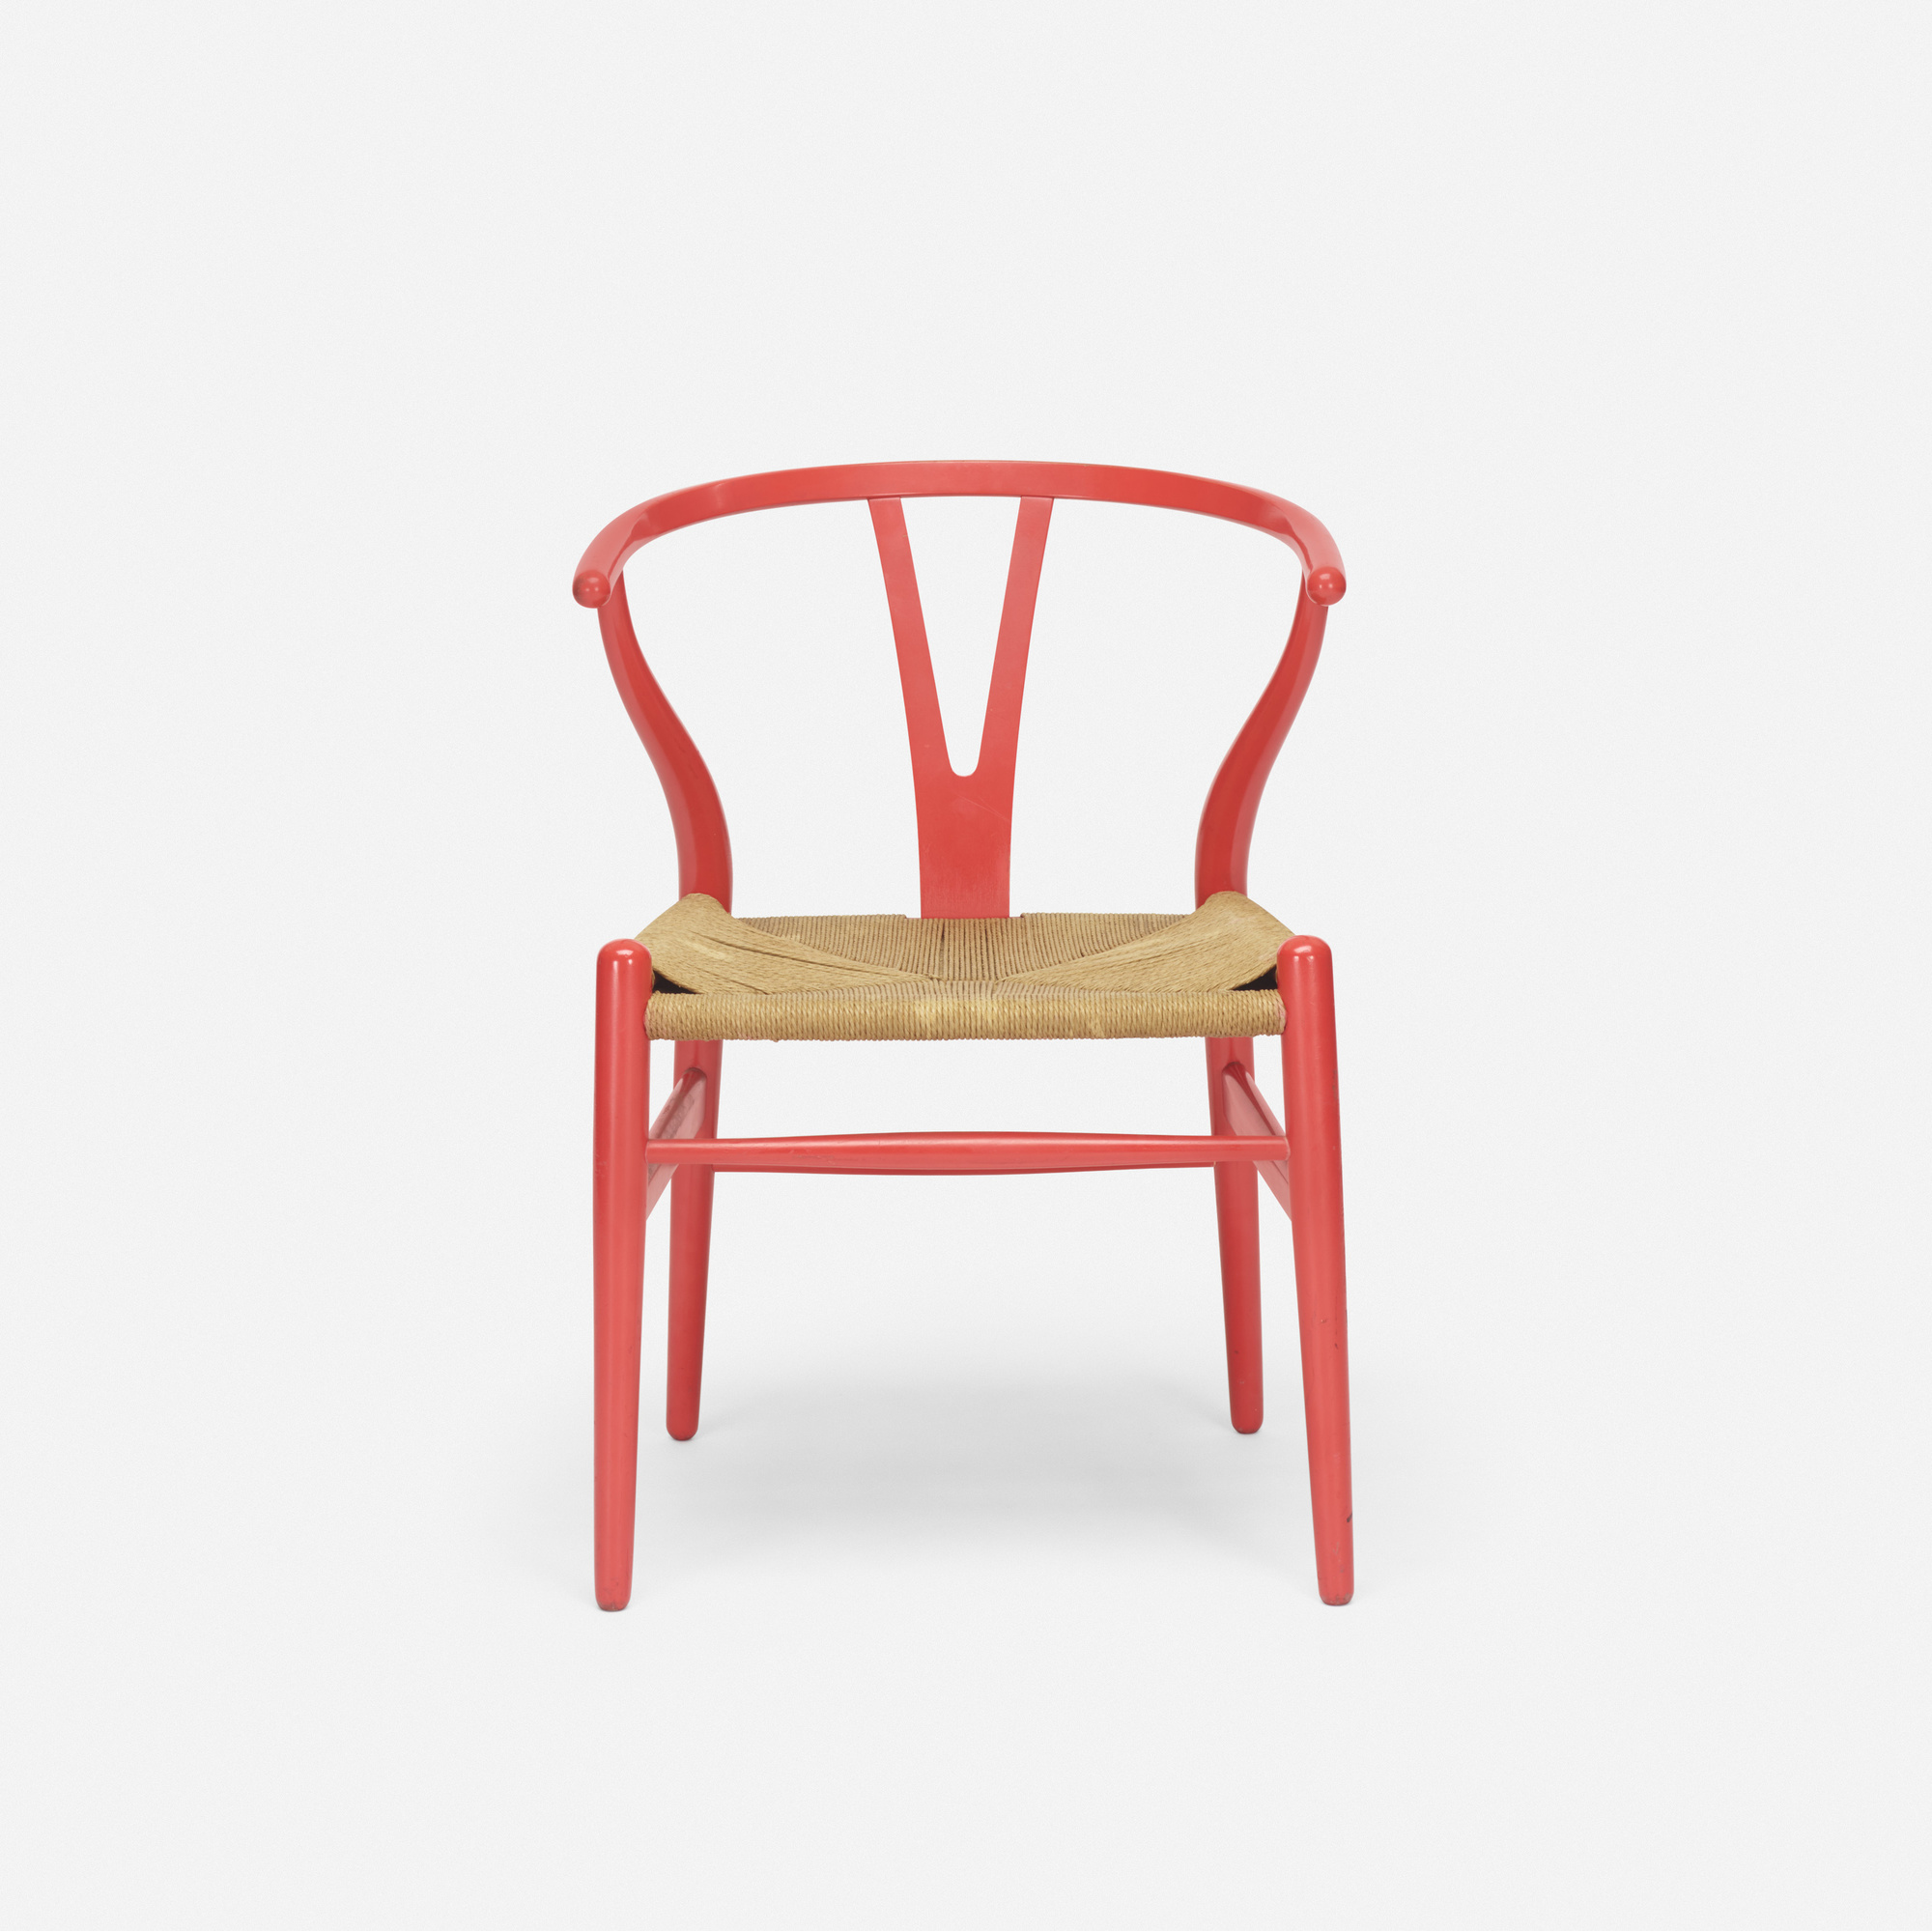 hans wegner chairs design within reach stool chair plastic wishbone for sale ch24